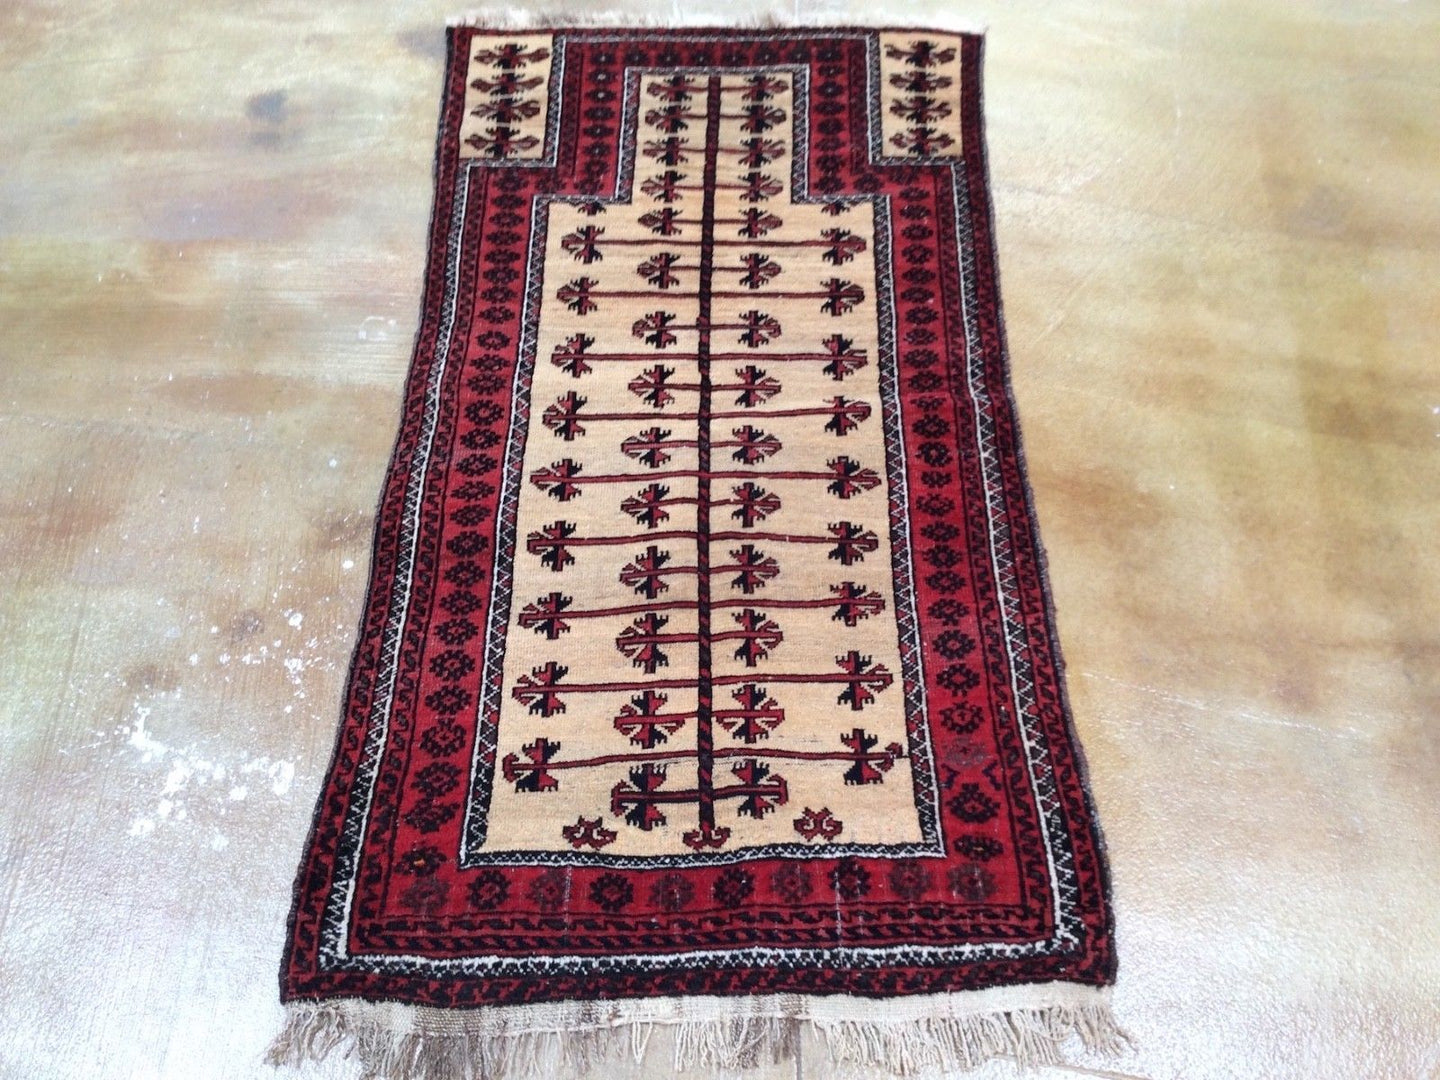 Beautiful Interior-Decorator Afghan Baloch Prayer Handmade Splendid Handknotted Real Wool Unique Rug